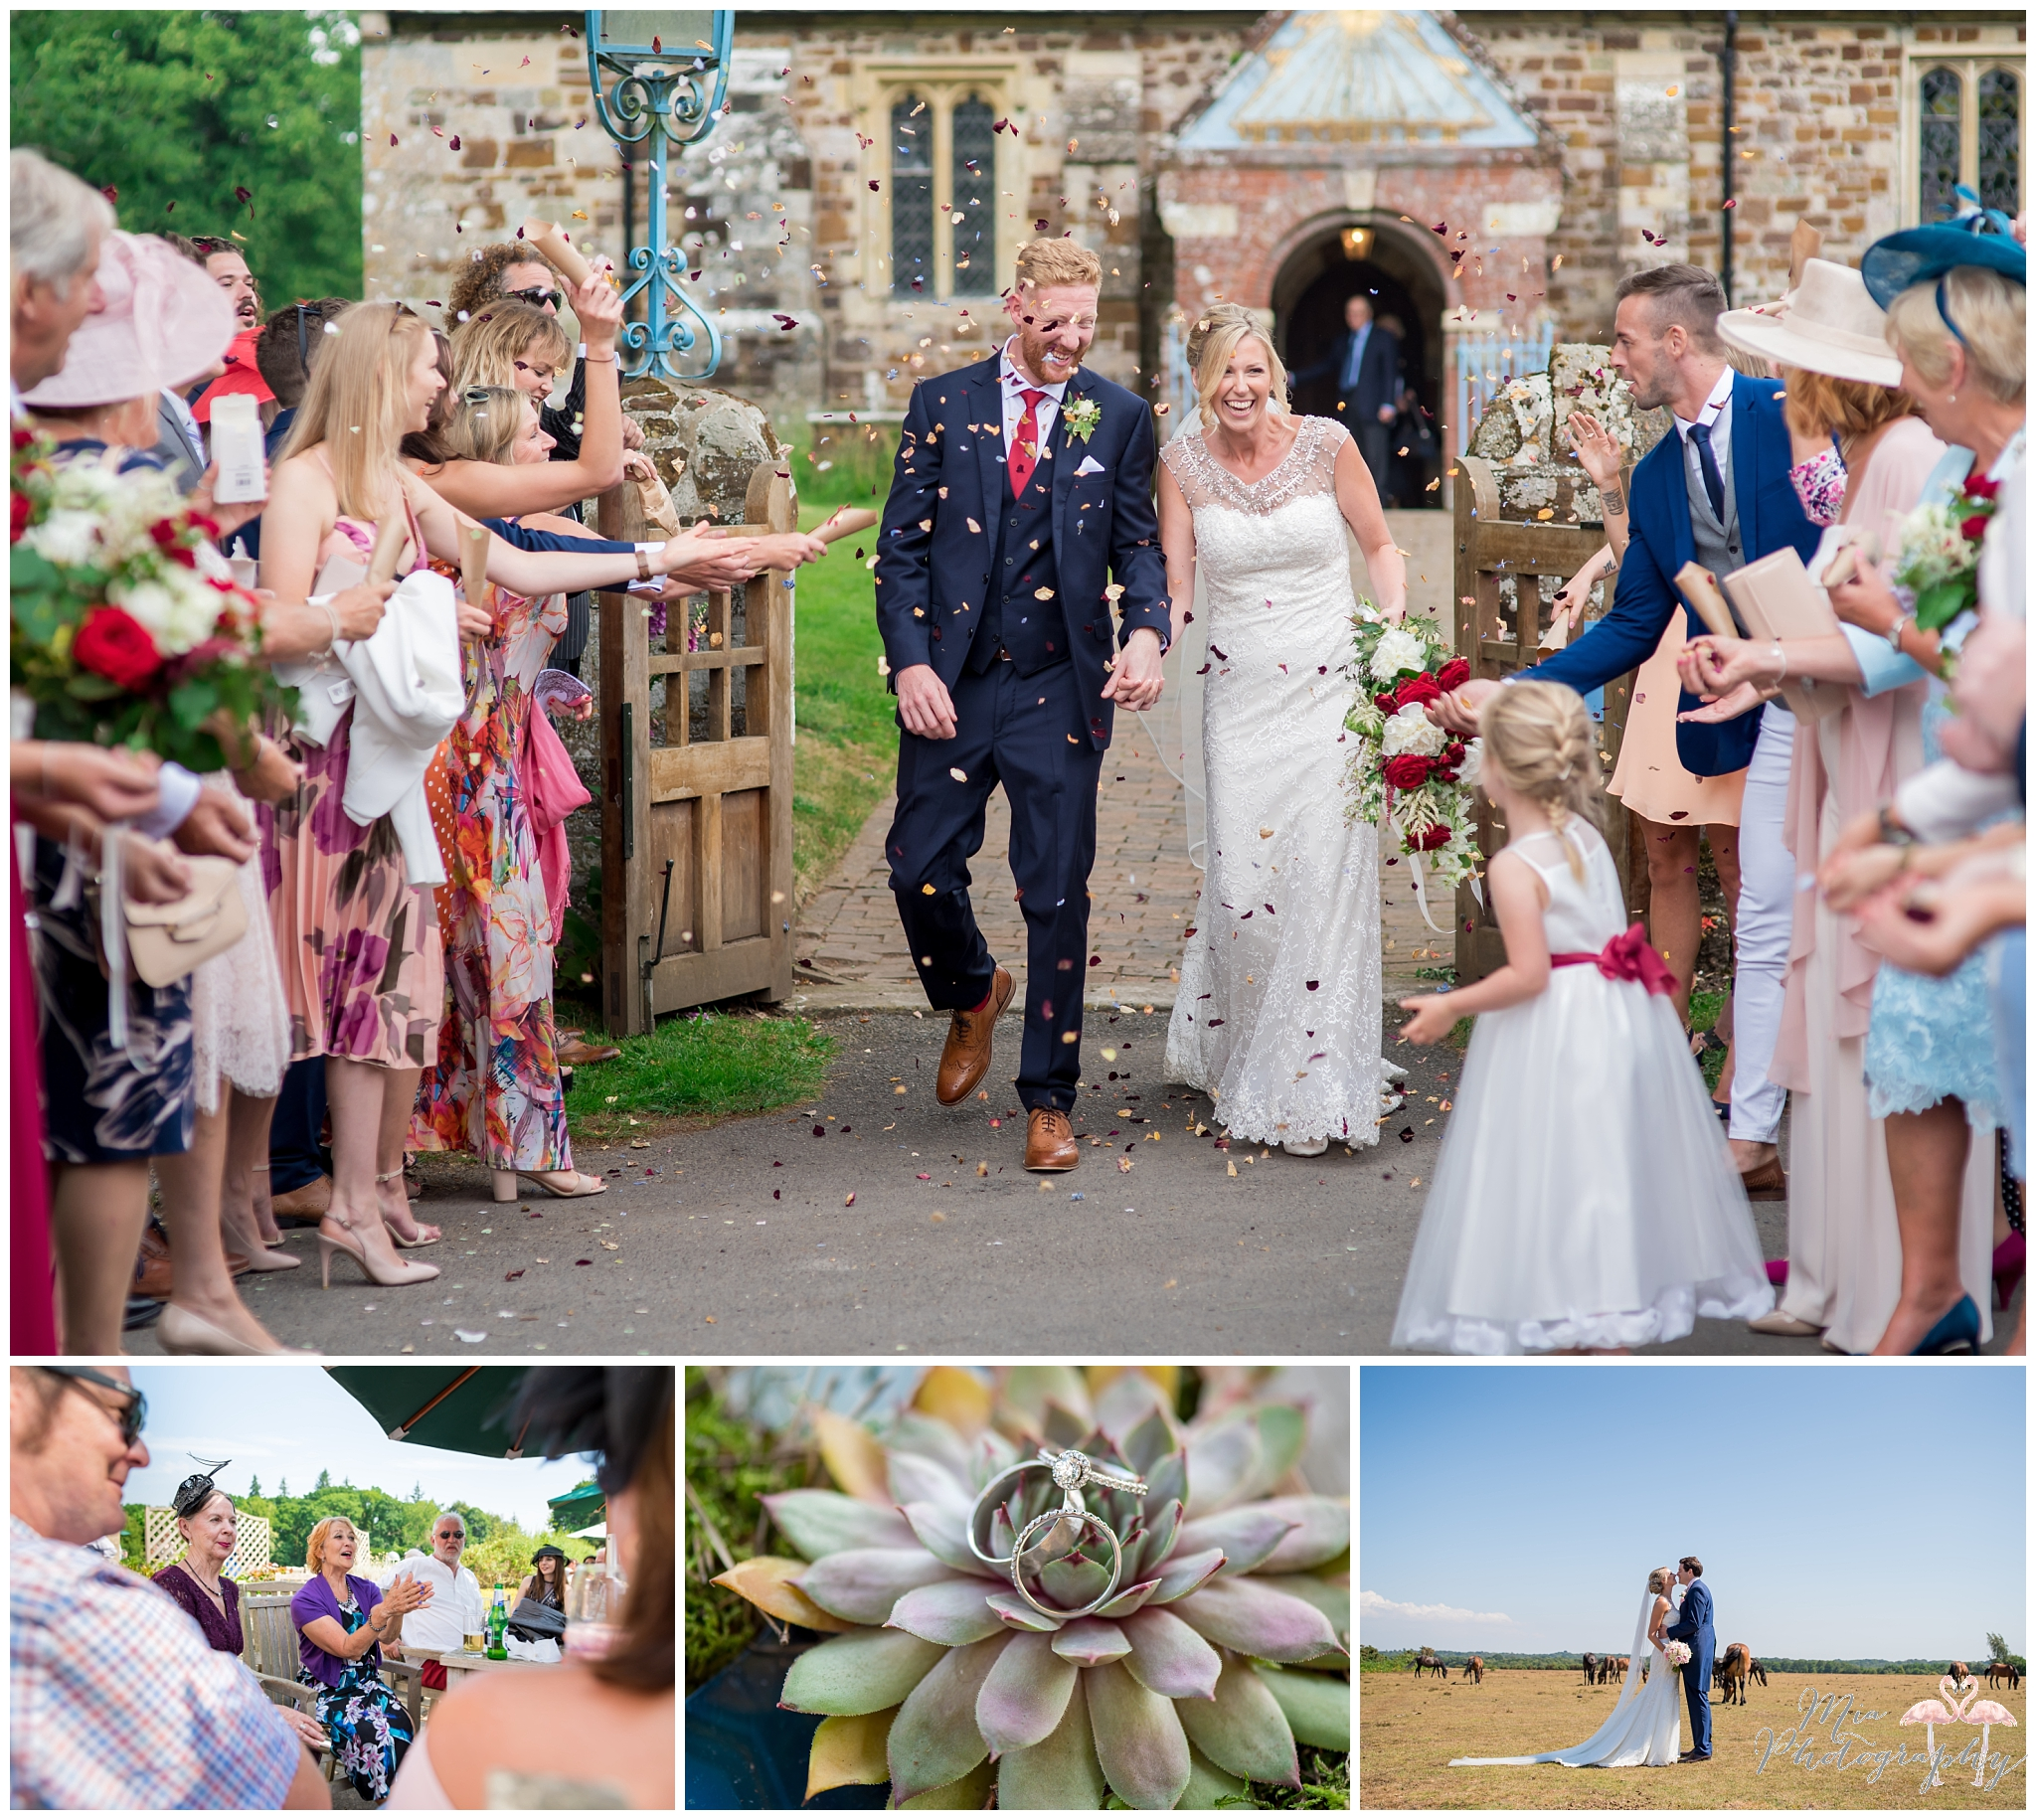 Best of Hampshire wedding photographer